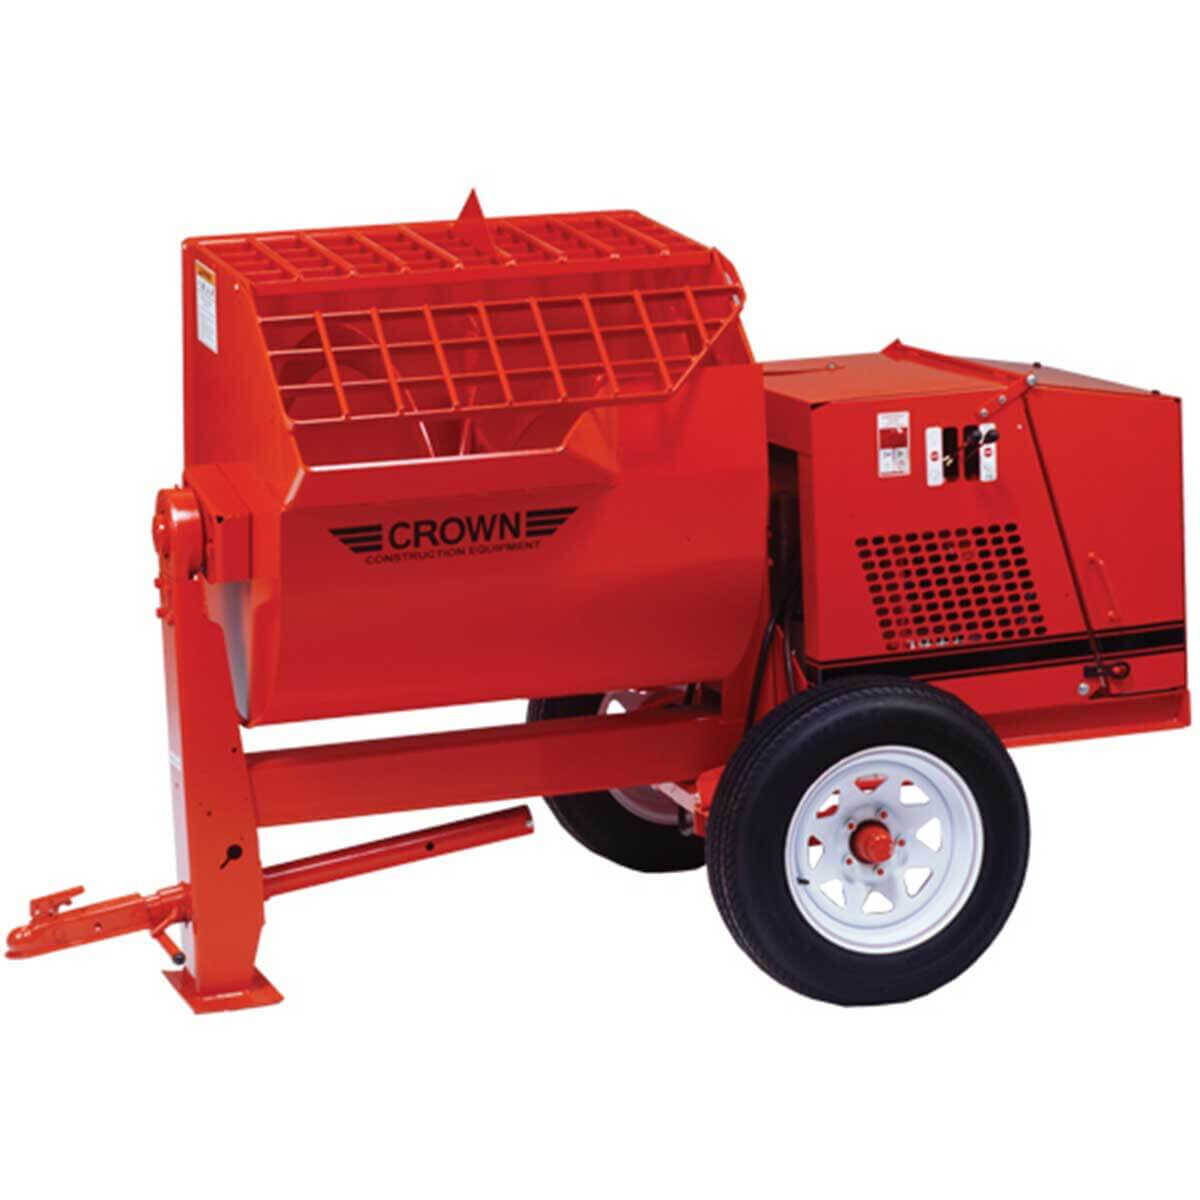 CrownHydraulic Towable Mortar Mixer